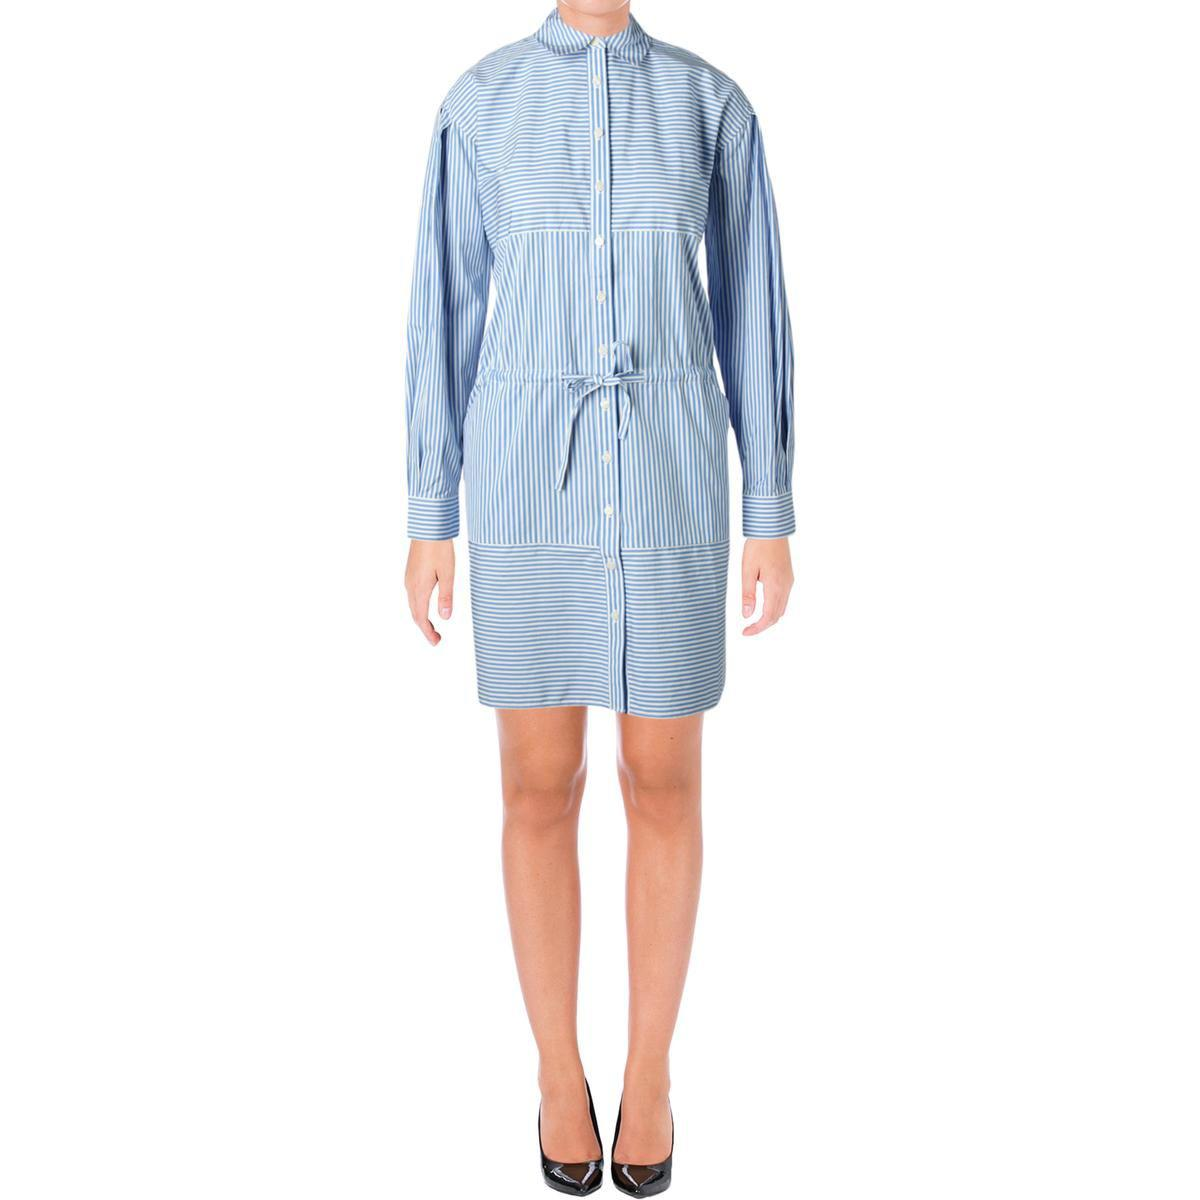 901b002be422 Juicy Couture. Blue Black Label Womens Striped Long Sleeves Shirtdress